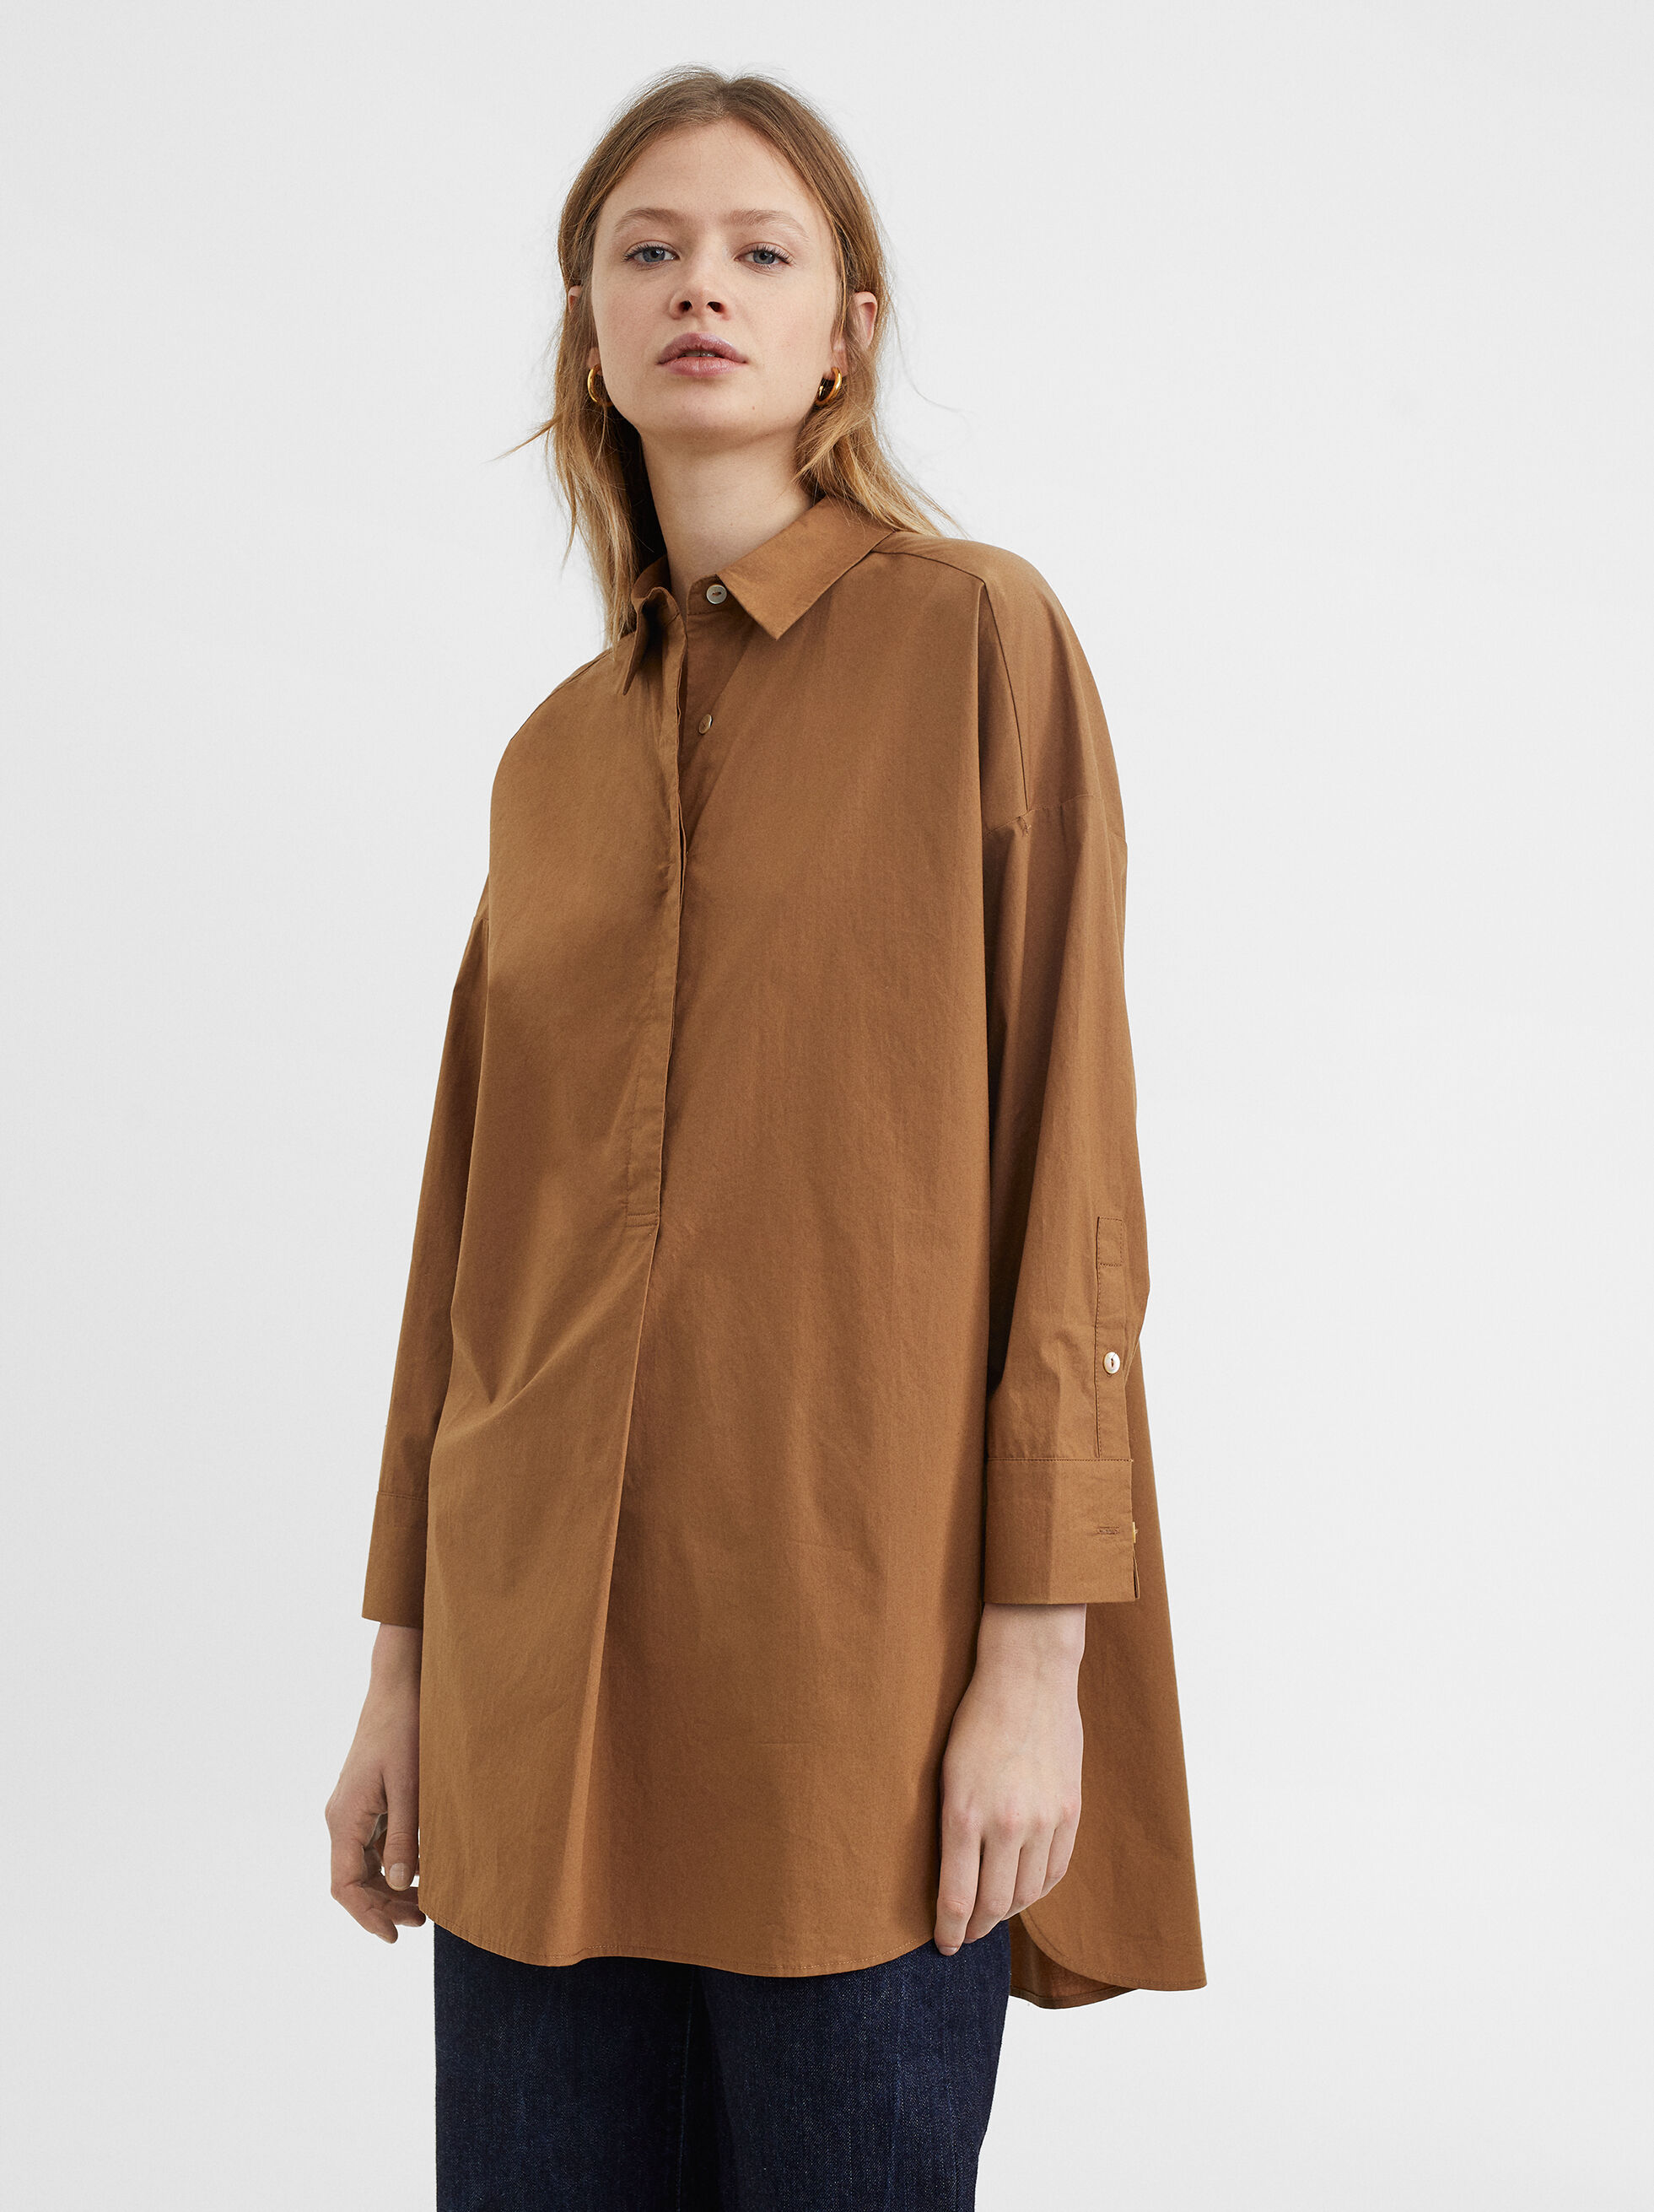 Shirt Dress With Button Details, Brown, hi-res